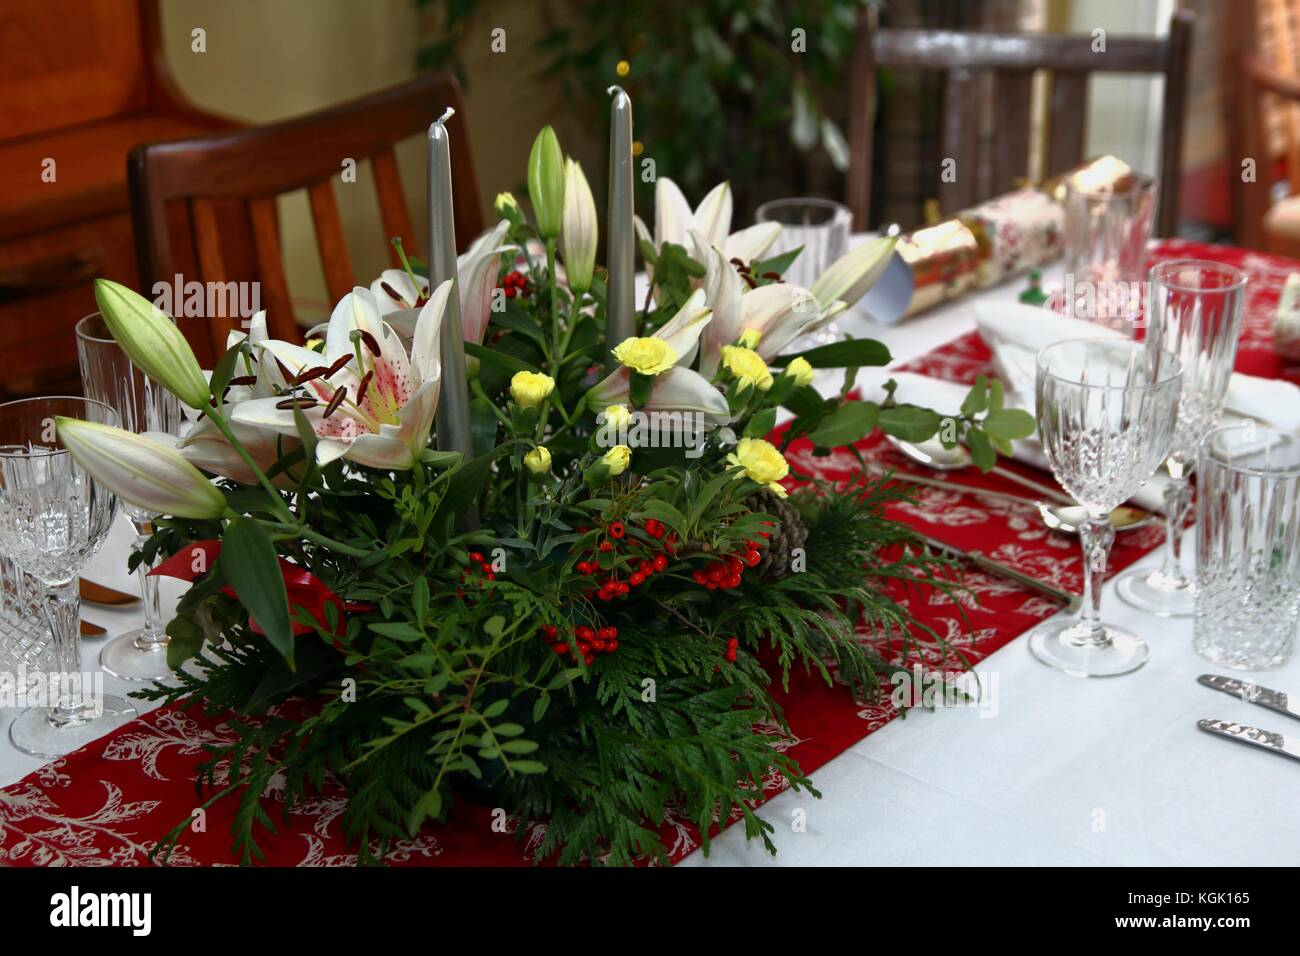 Beautiful Floral Centerpiece With Candles On A Festive Dining Table Laid  Ready For Christmas Dinner In A Traditional Home